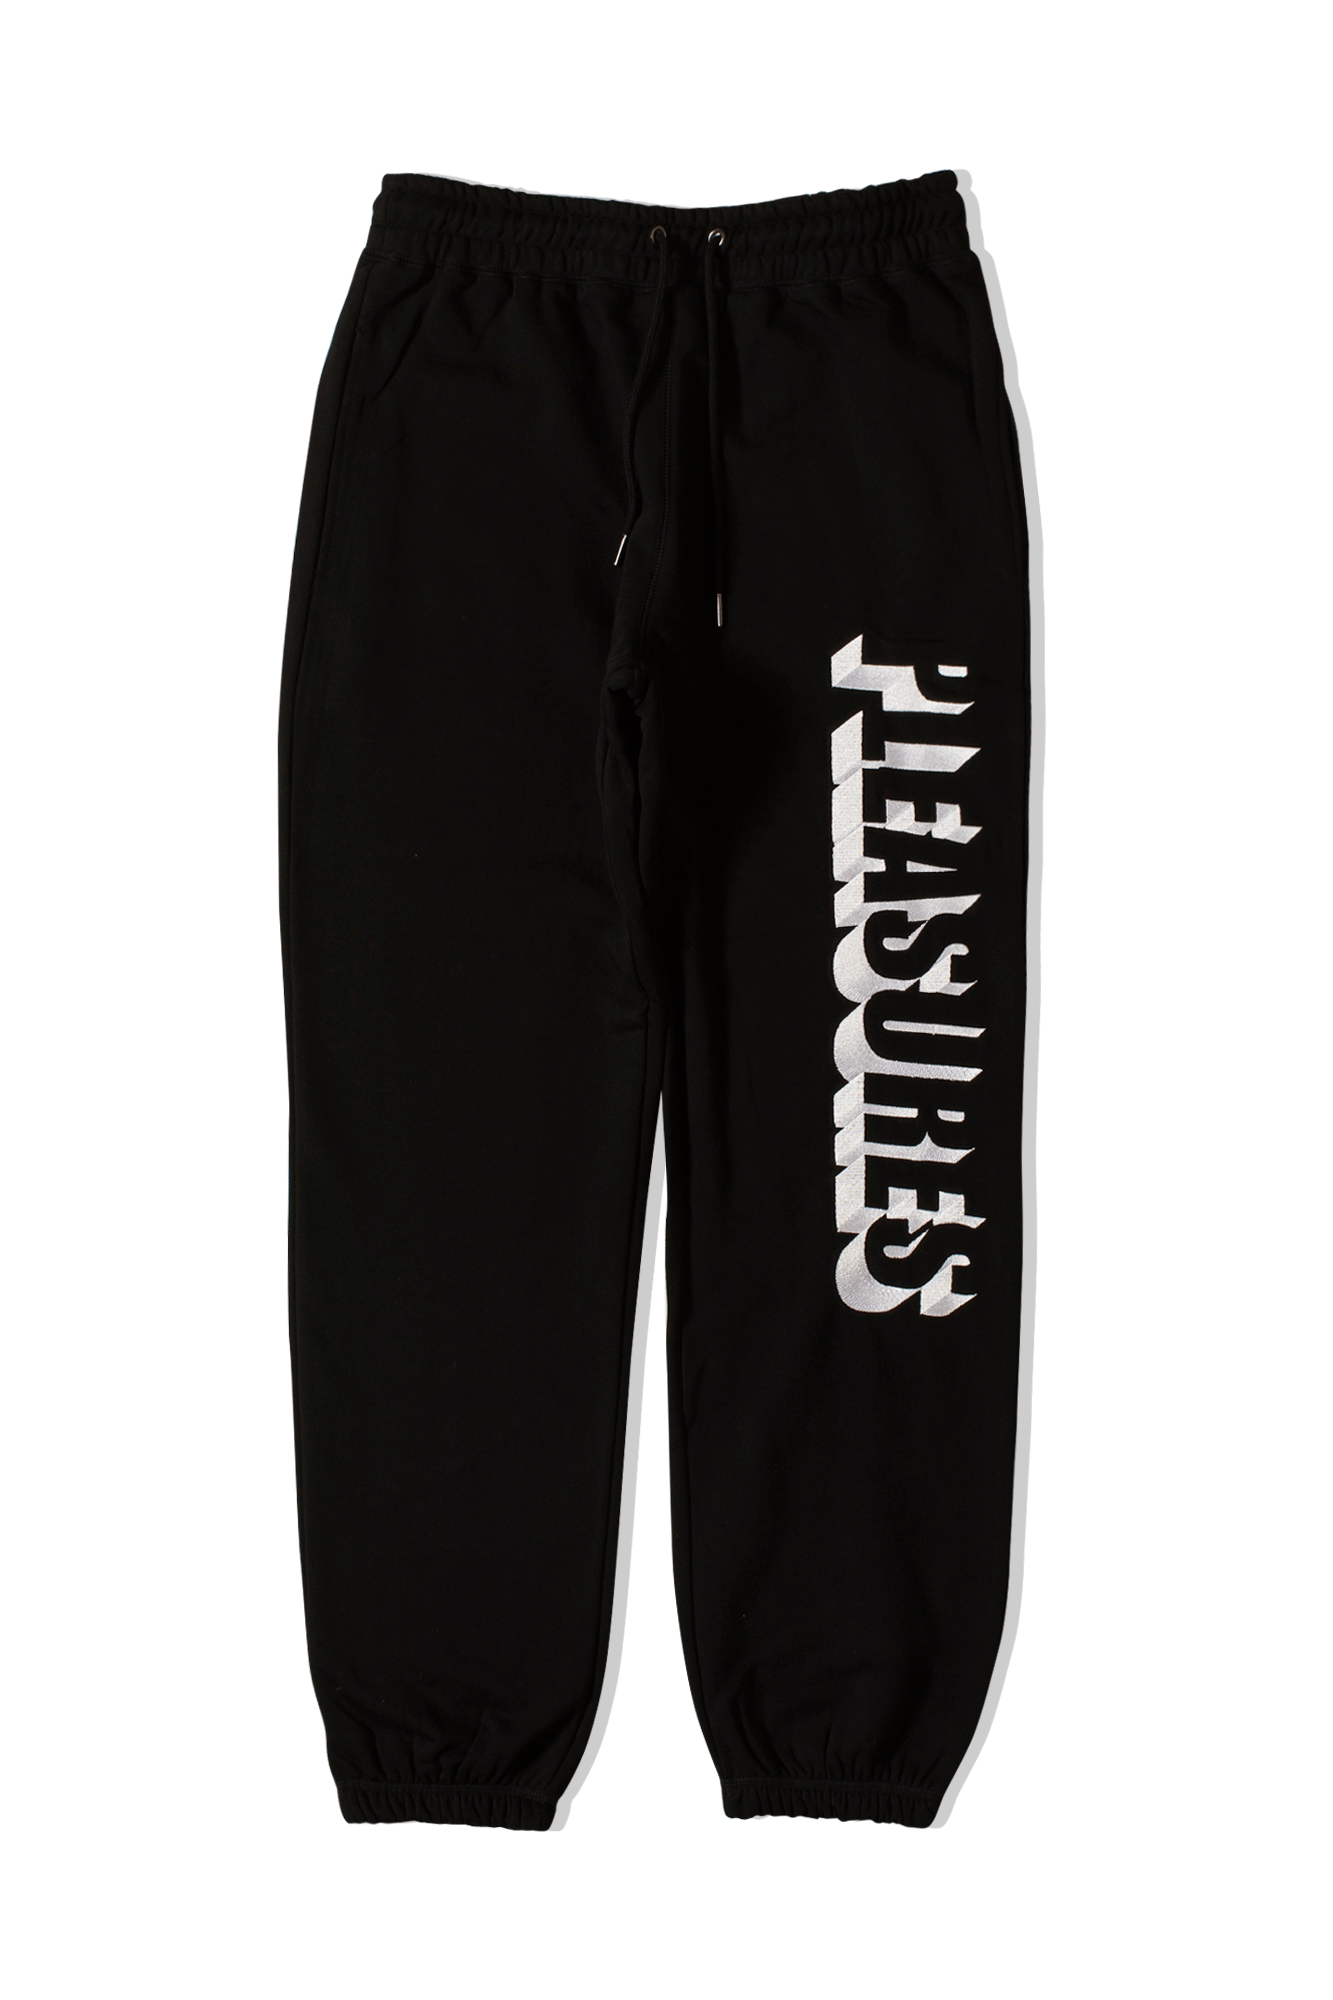 Harvard Embroidered Sweatpant Black